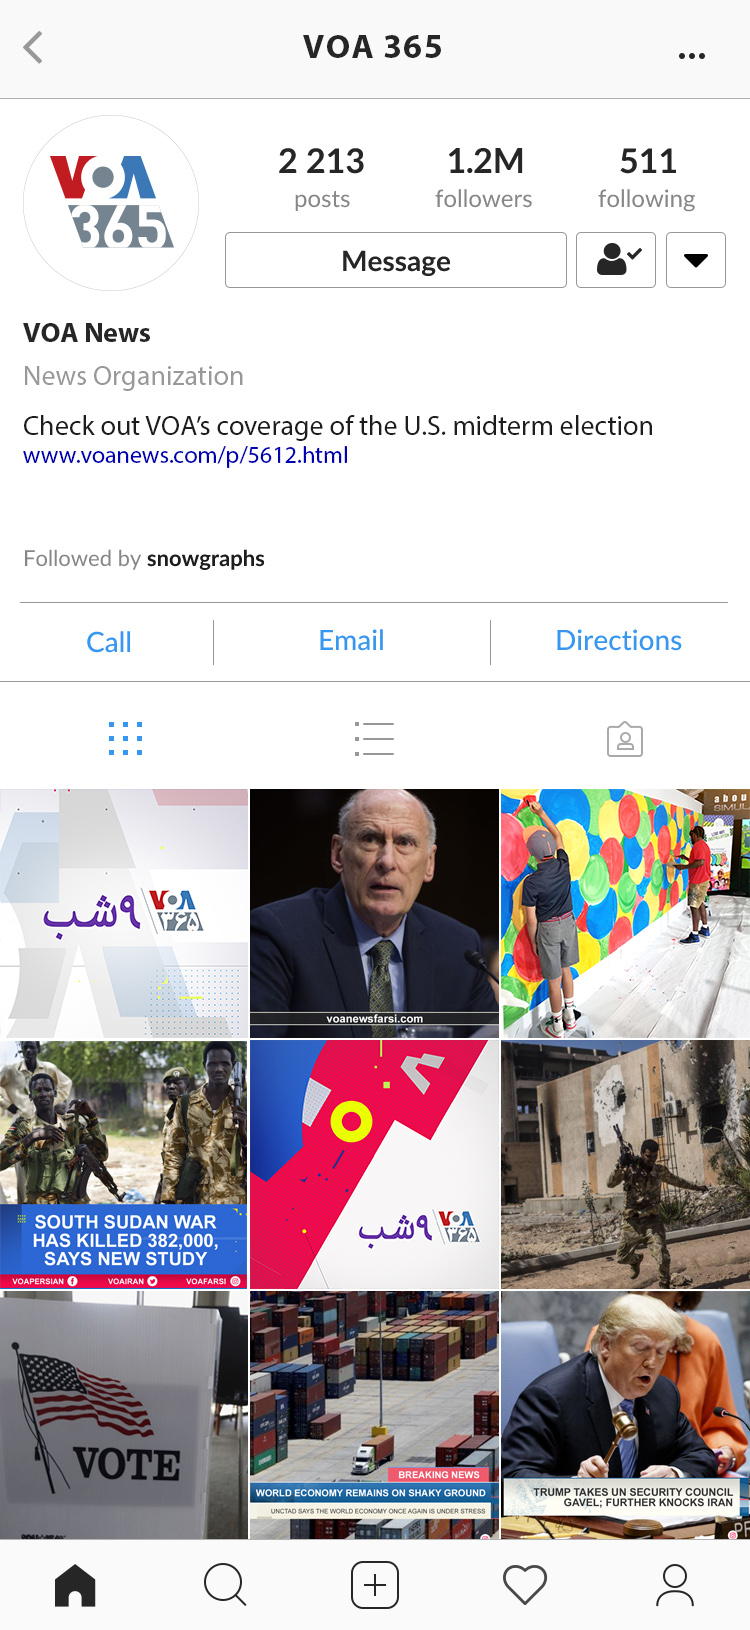 Social screen shot of Voice of America 365 Instagram page